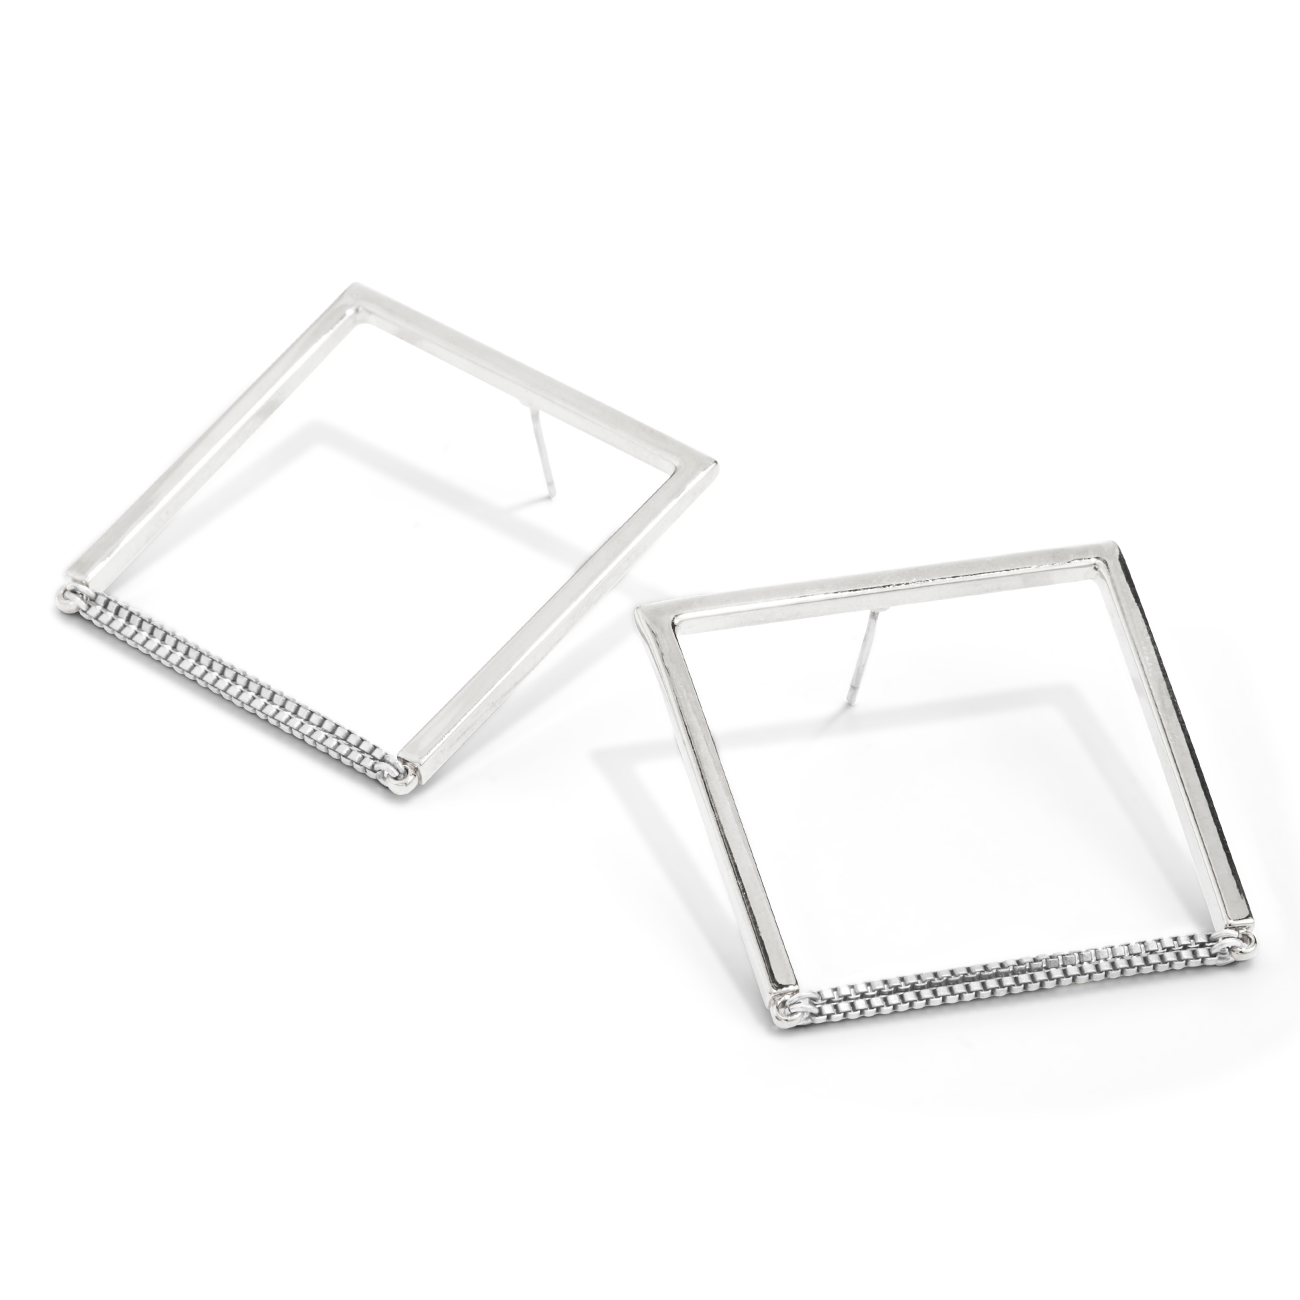 Silver square shaped Nora hoop Earrings by Jenny Bird